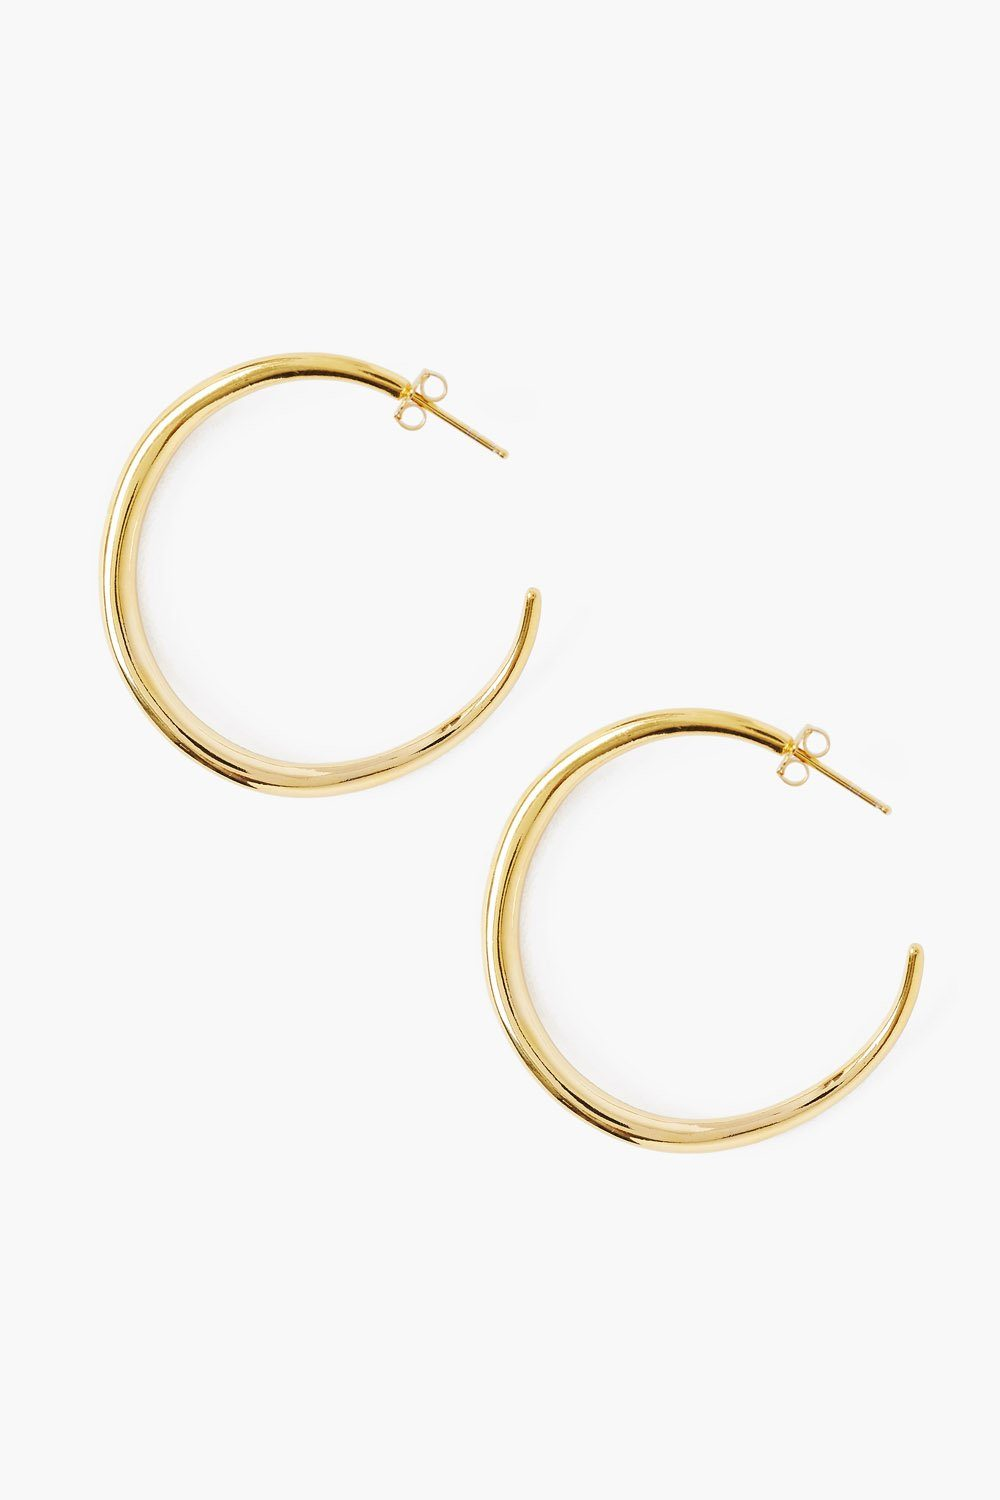 Grande Infinity Hoop Gold Earrings